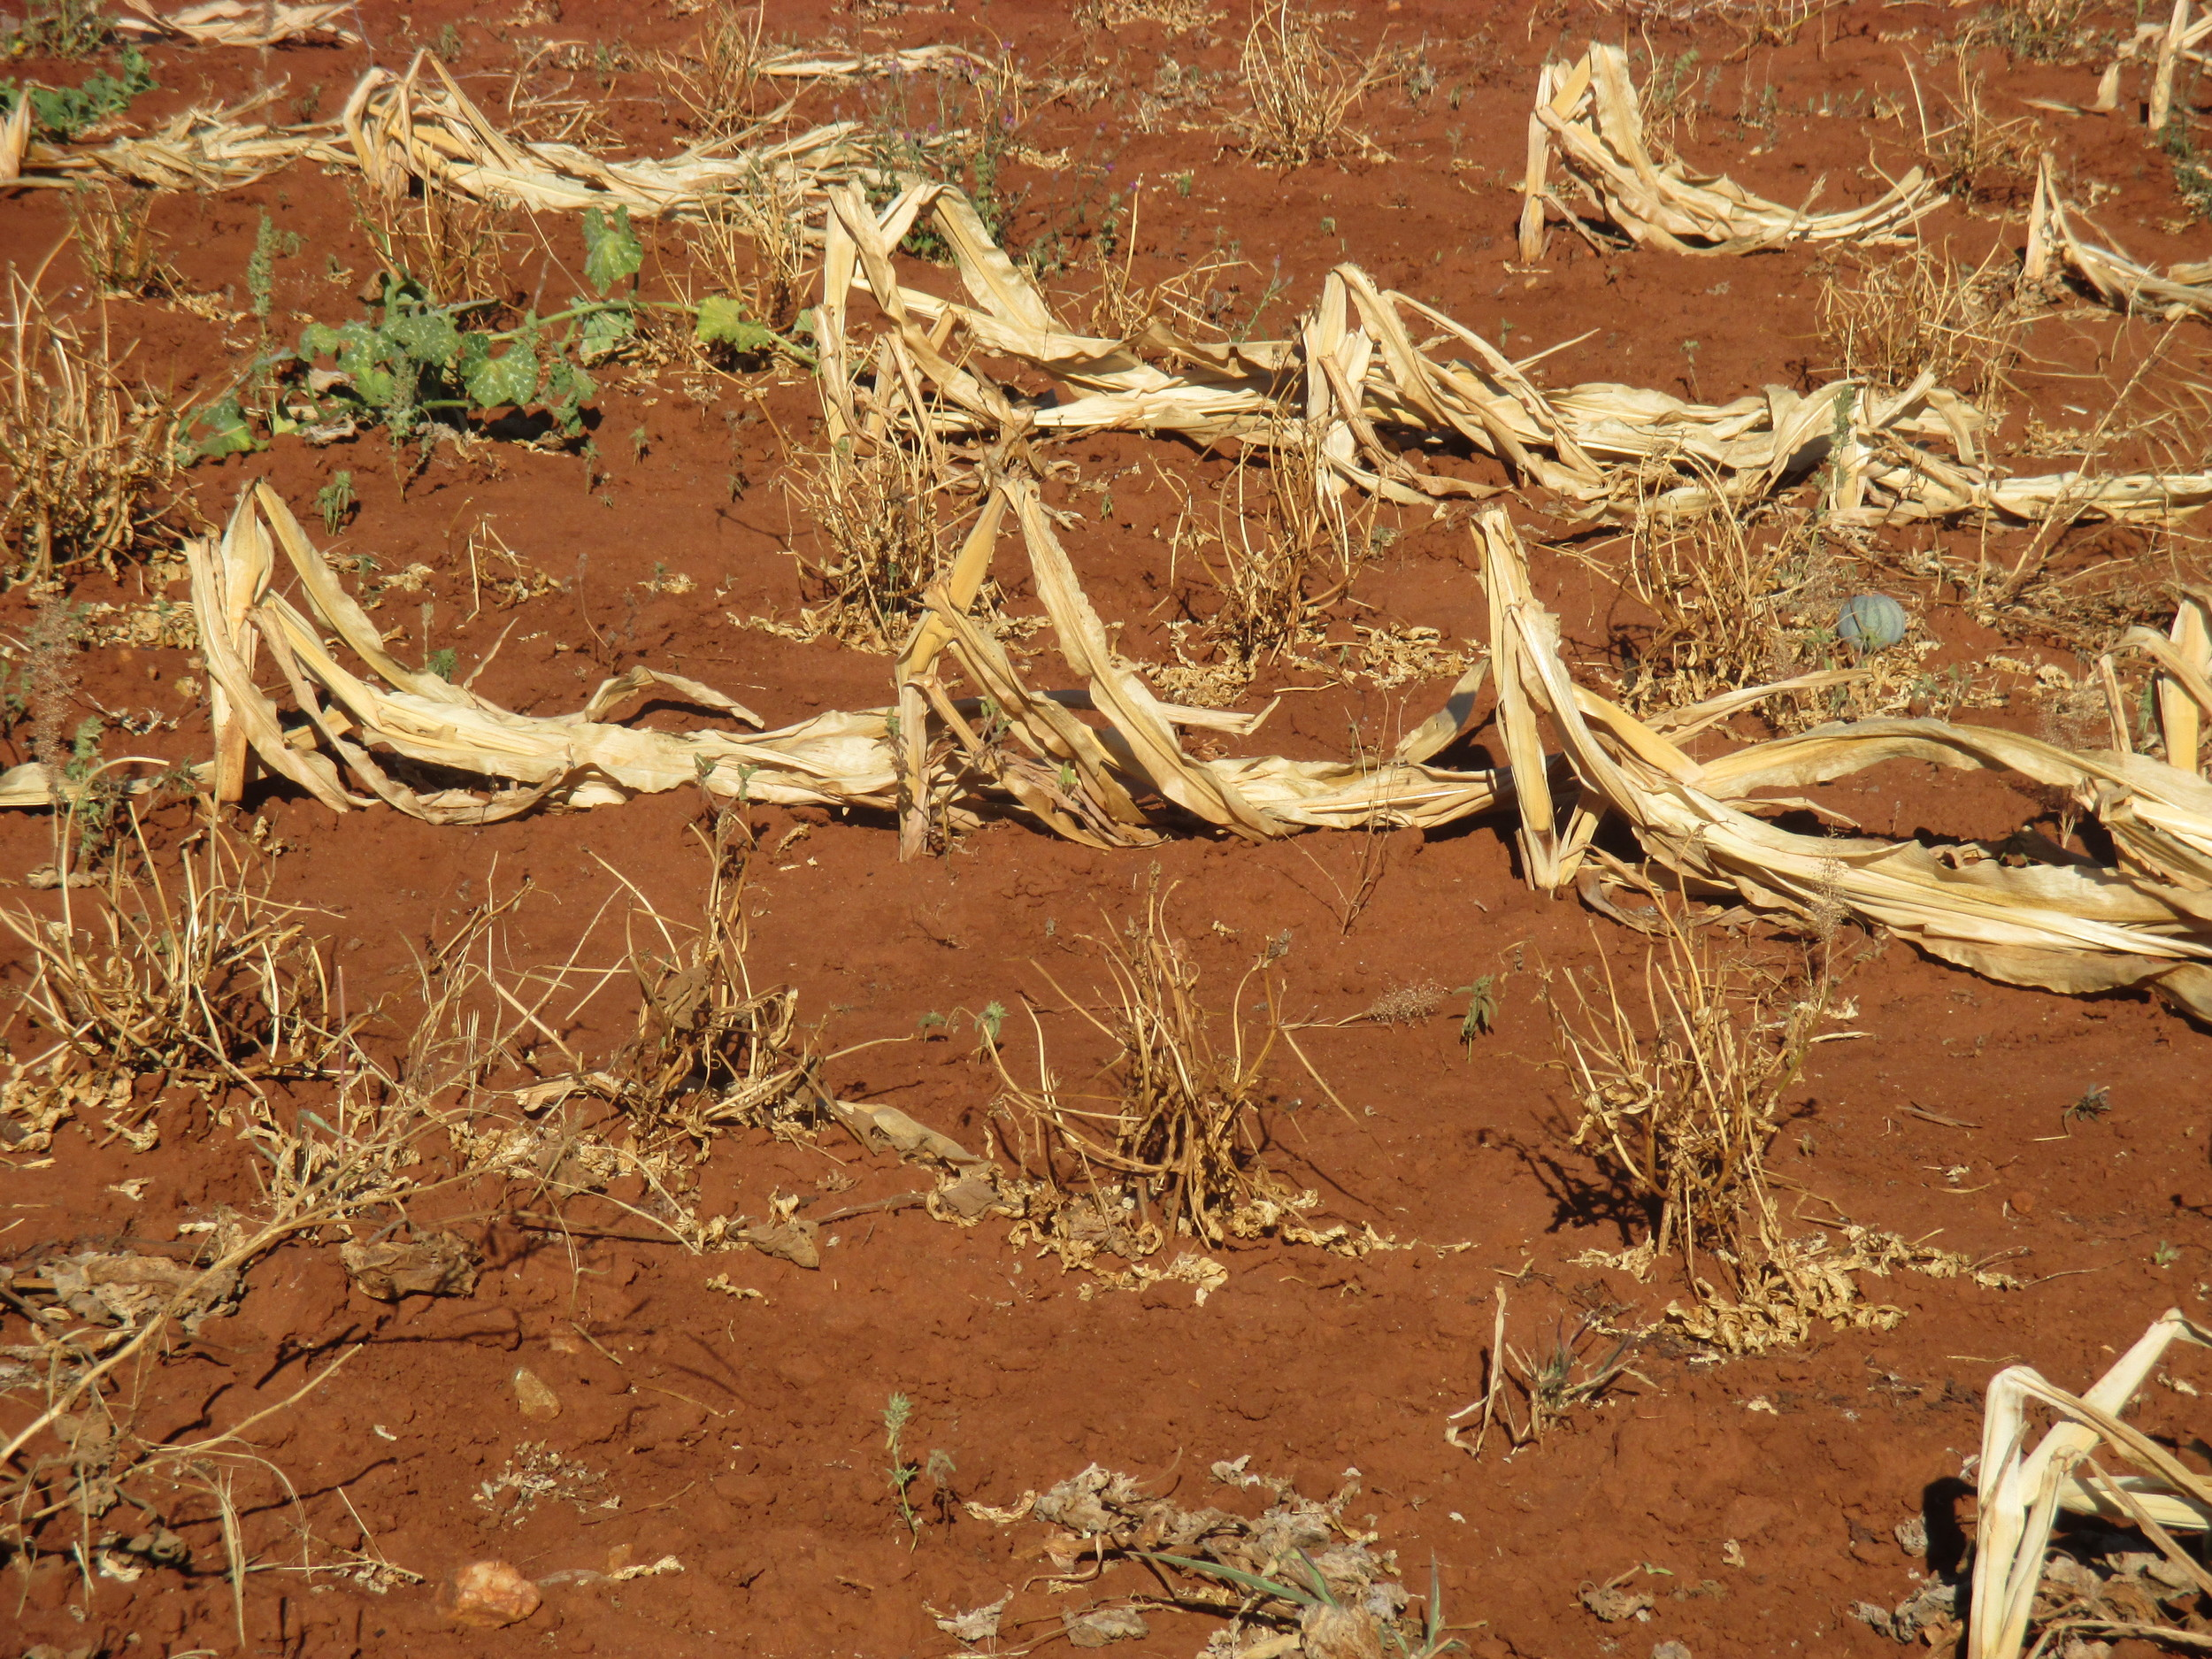 Across the country, corn fields like this one lay dry and withered, leaving many poor farmers with vastly reduced food stocks to feed their families until the next harvest season, which is not until March 2017. Zimbabwe's lean season – which usually starts in October – is expected to start far earlier this year.